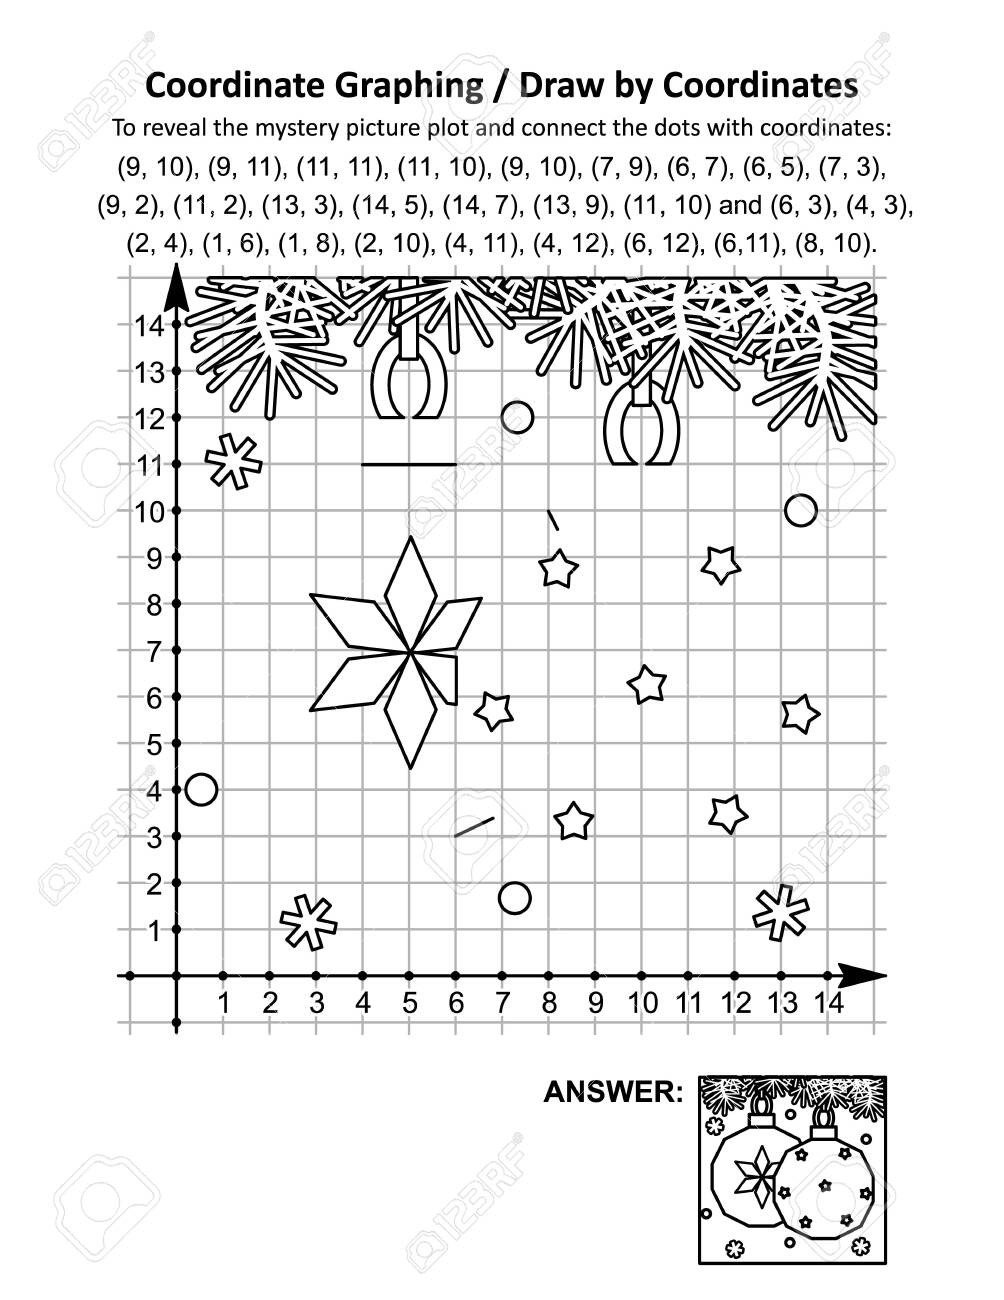 photo stock vector coordinate graphing or draw by coordinates math worksheet with christmas ornaments to reveal the mys